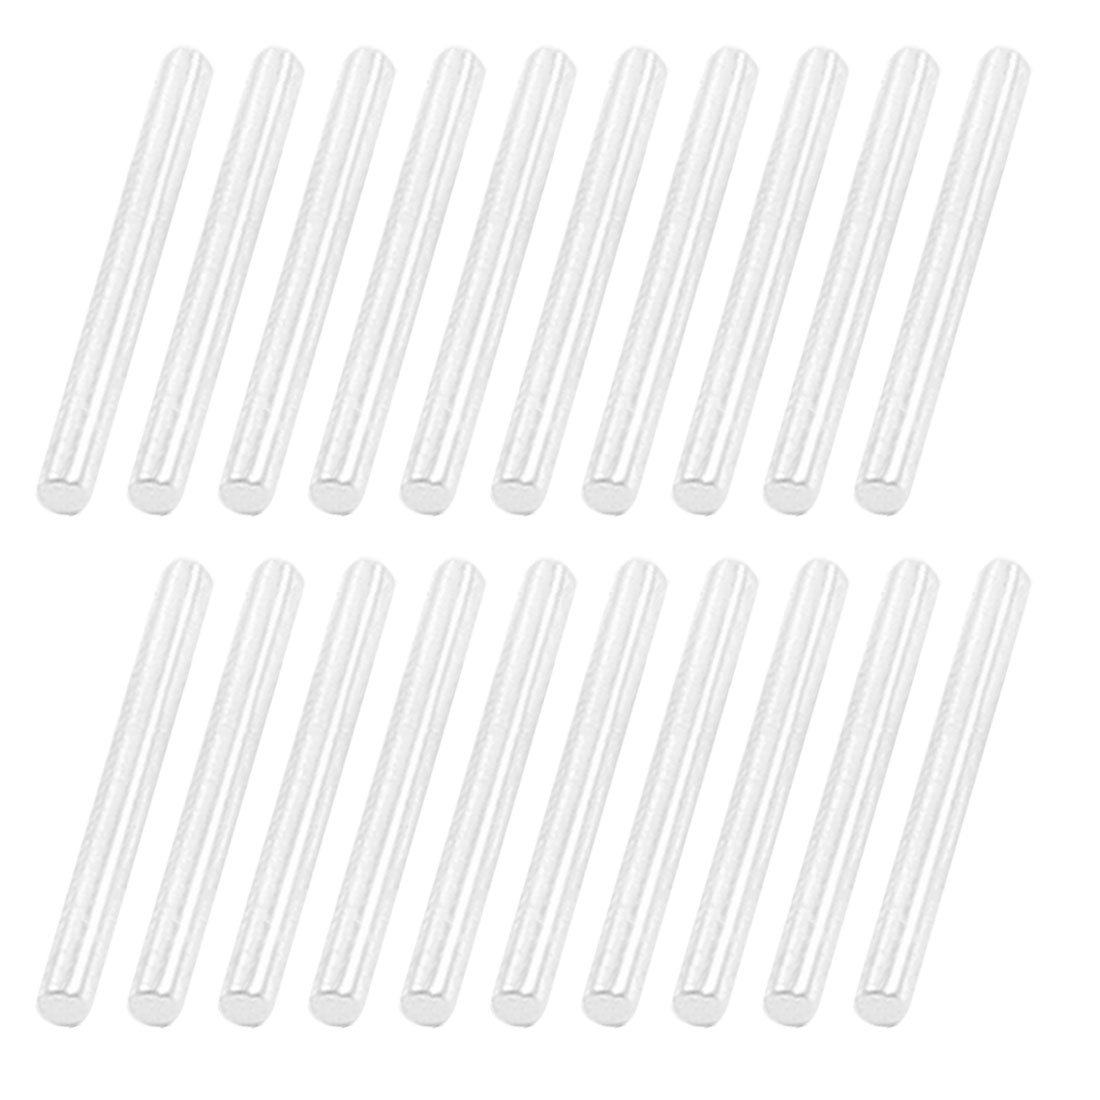 uxcell 20Pcs Stainless Steel Straight Shaft Round Rod Bar 14mmx2mm for RC Car